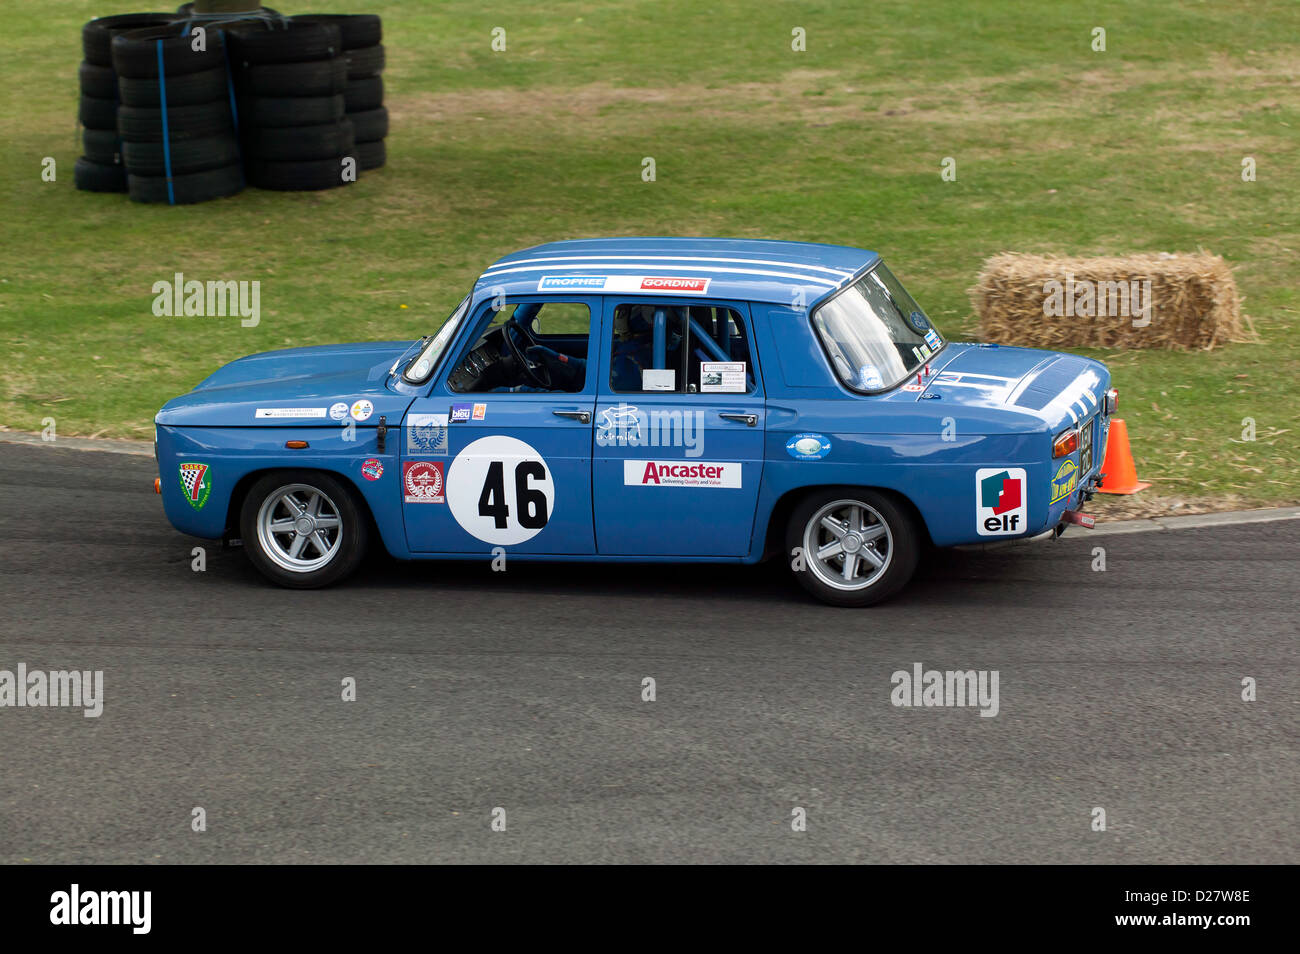 patrick bridger driving a1965 renault 8 gordini in the sprint event stock photo royalty free. Black Bedroom Furniture Sets. Home Design Ideas